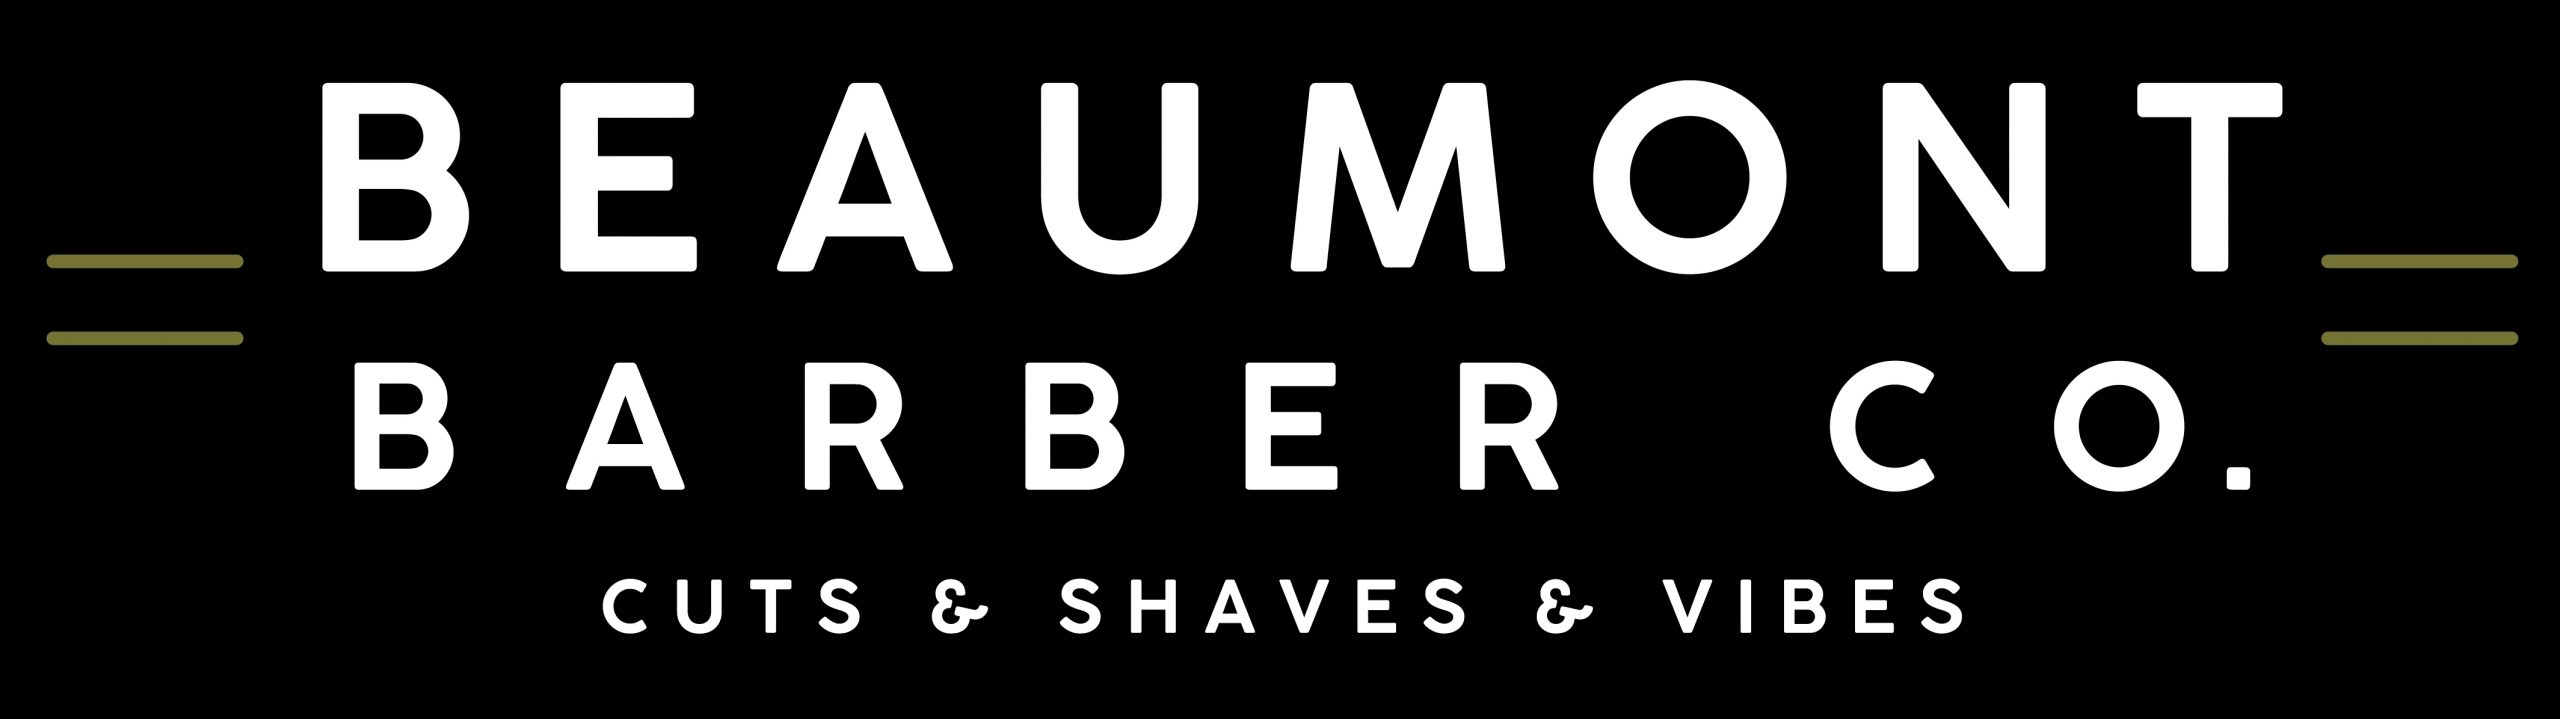 Beaumont Barber Co.